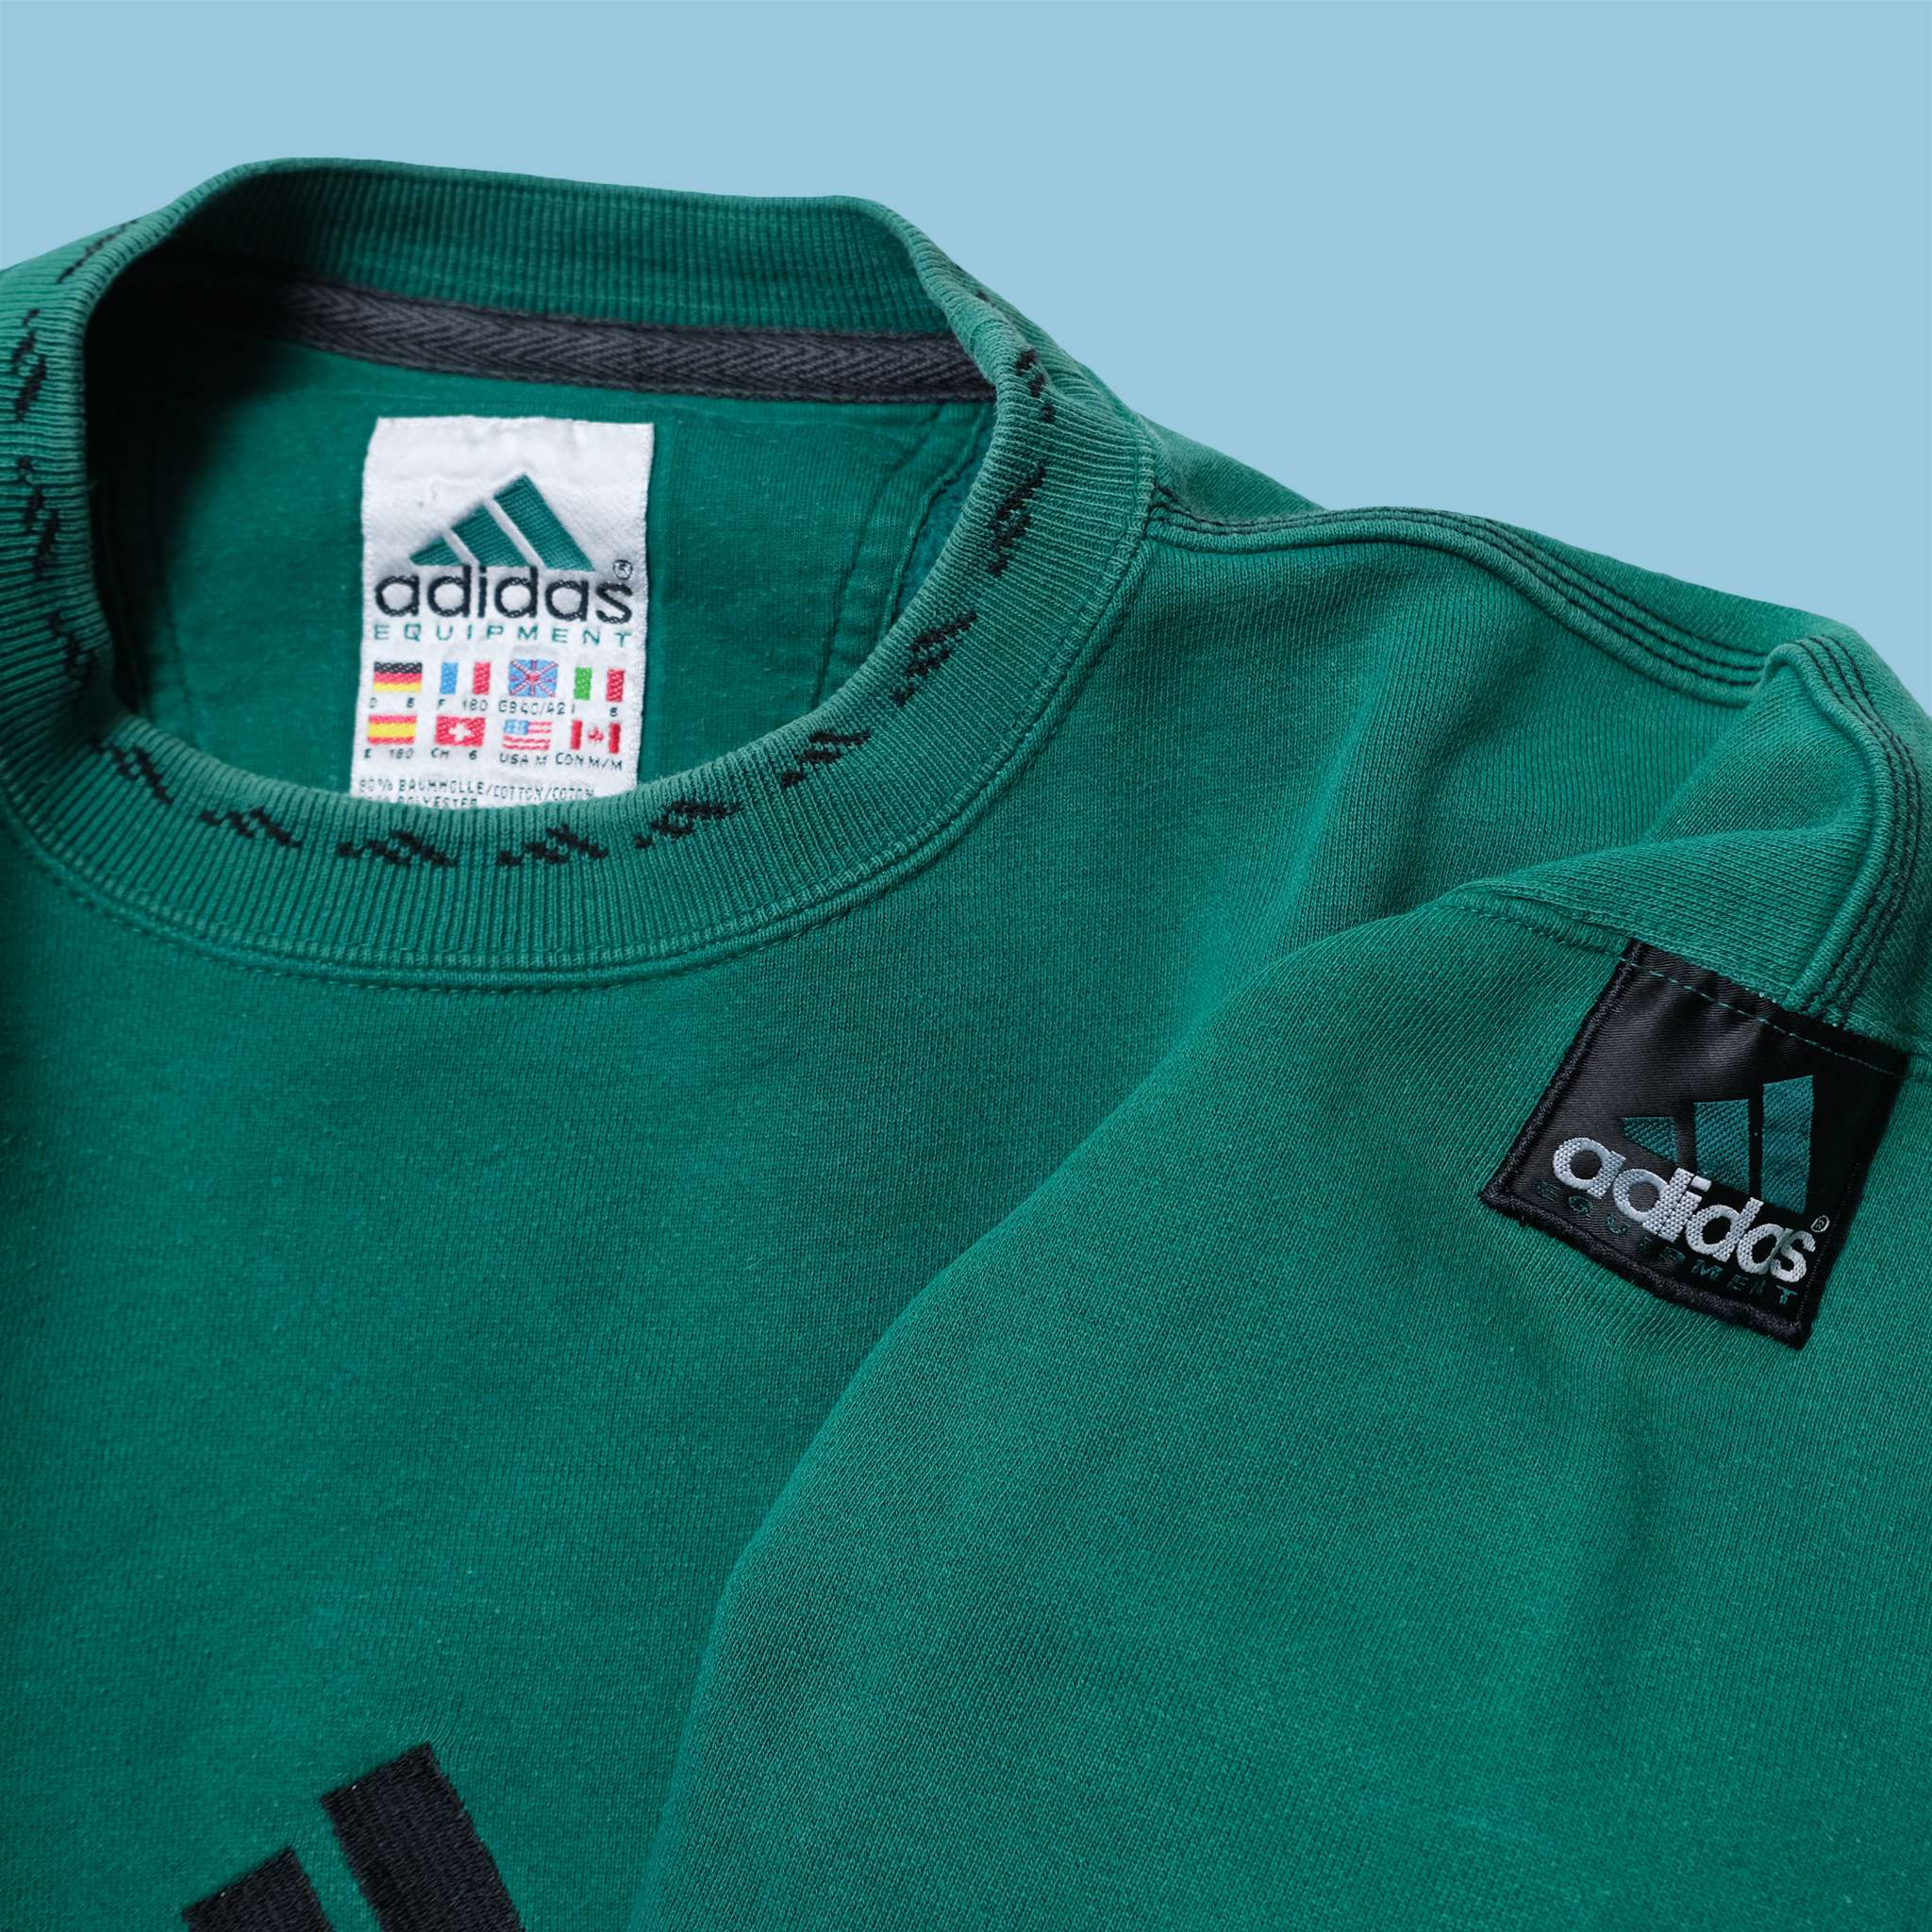 Vintage adidas Equipment Sweater Medium / Large